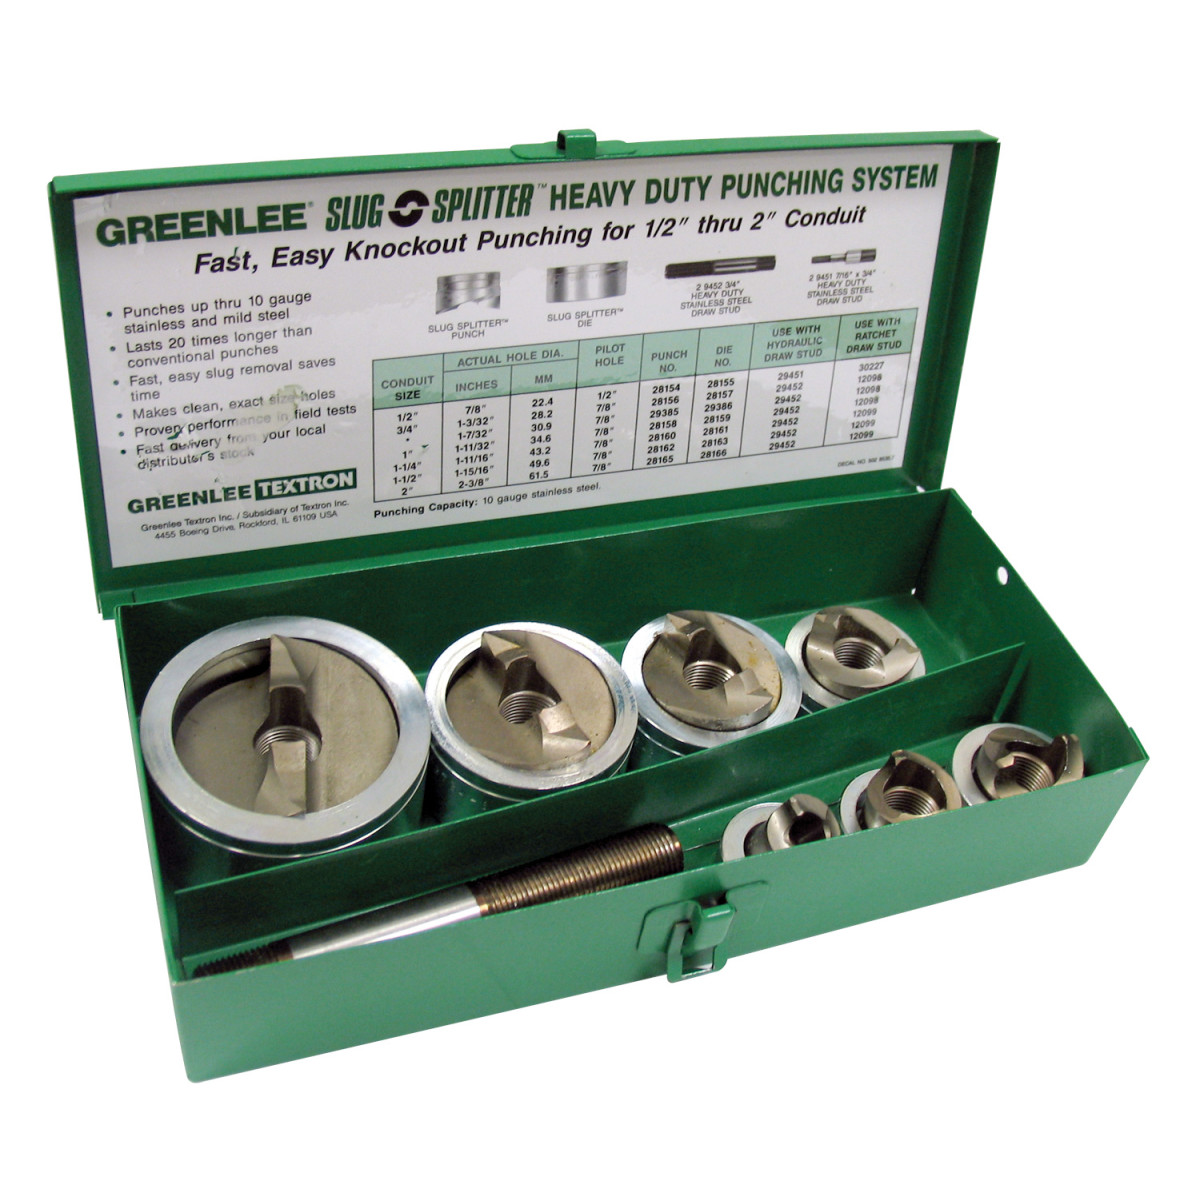 GRT7307 HYDRAULIC KNOCKOUT PUNCH SET, SC, GREENLEE